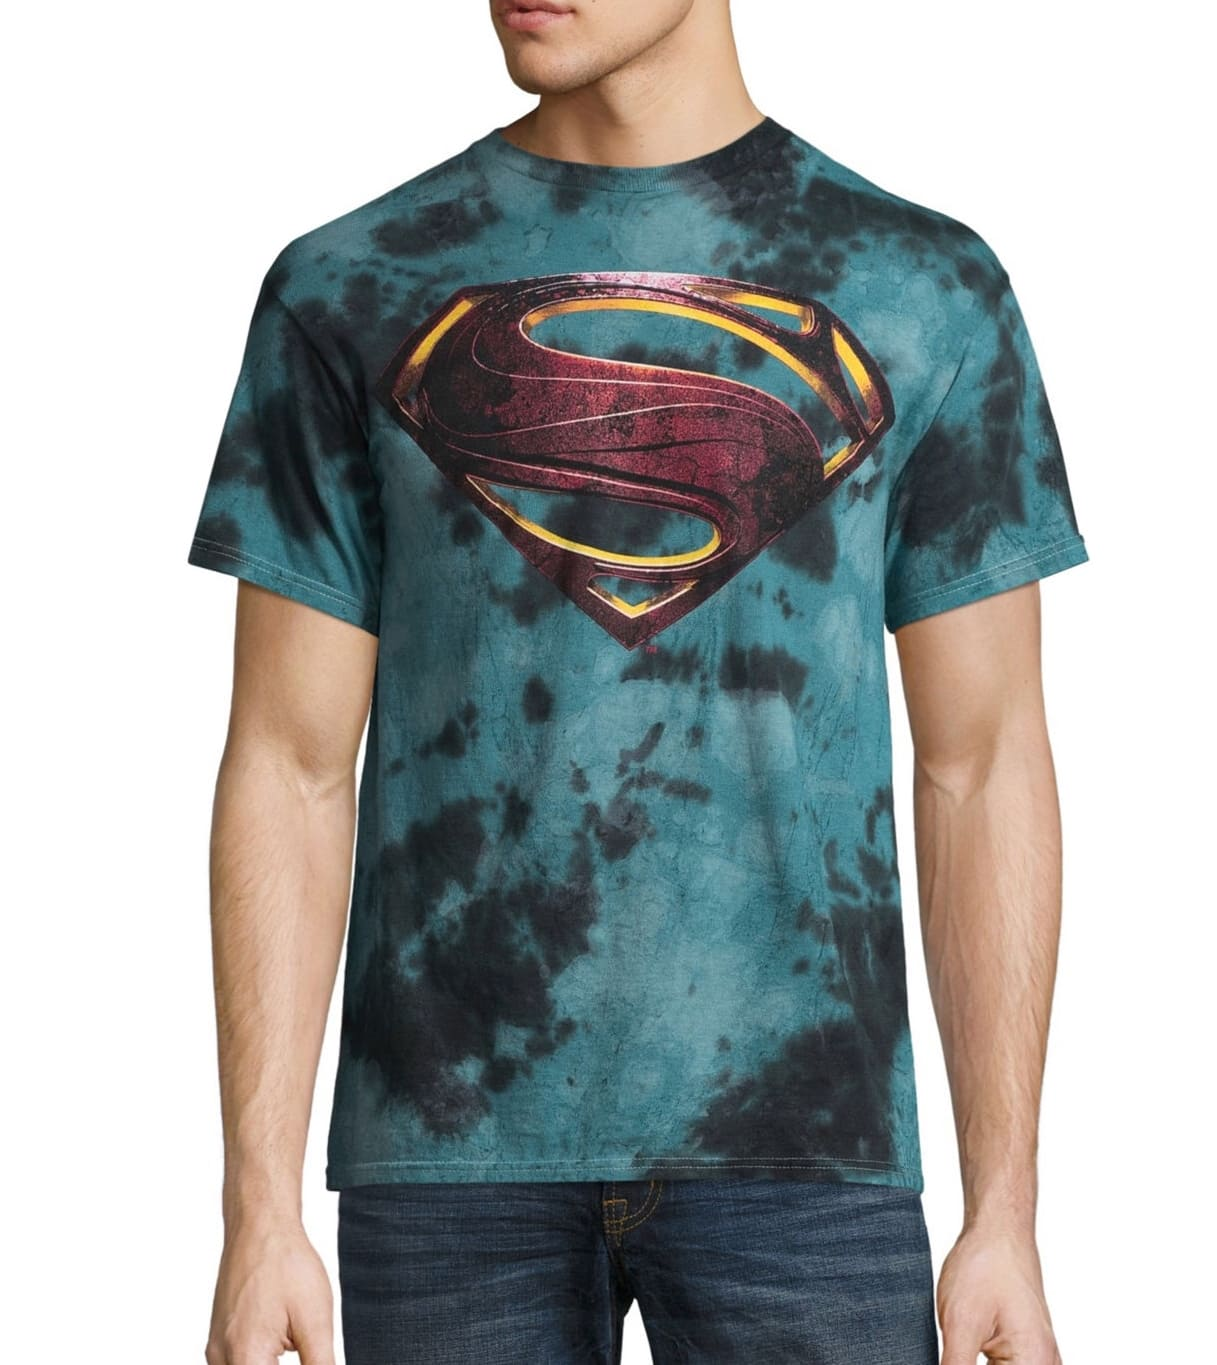 10 Men's Short-Sleeve Graphic T-Shirts for $35